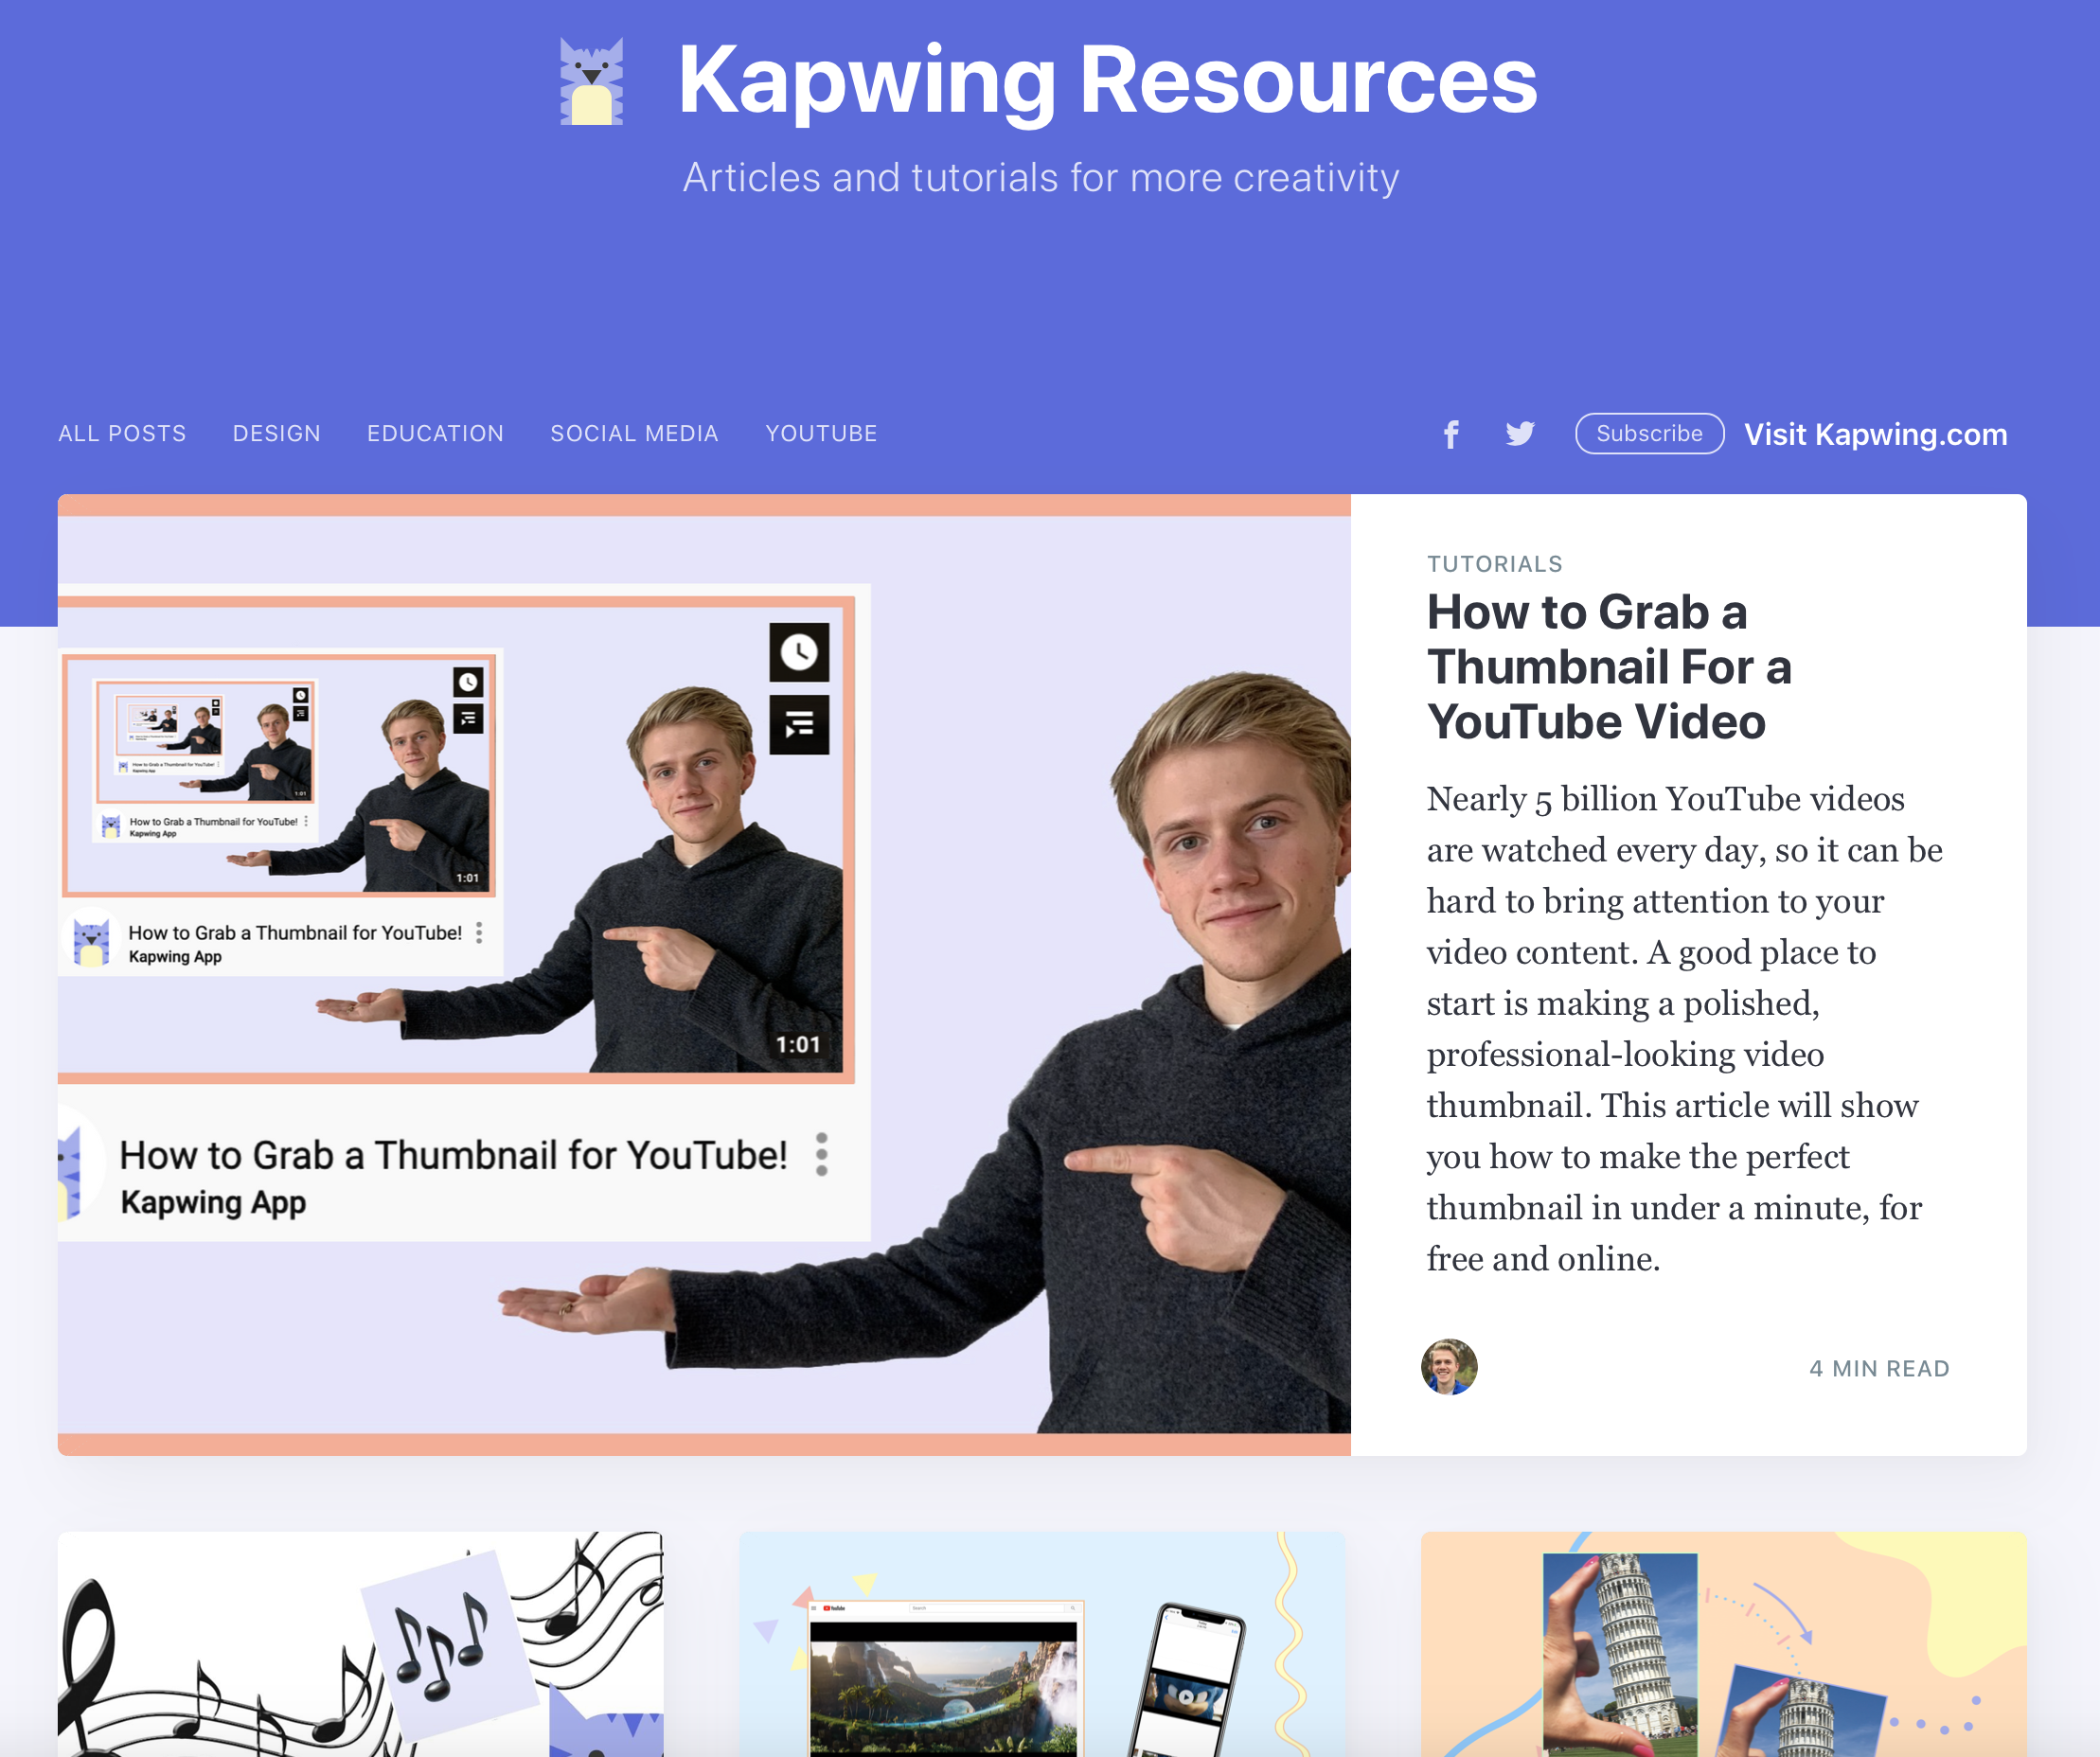 The Kapwing resources page